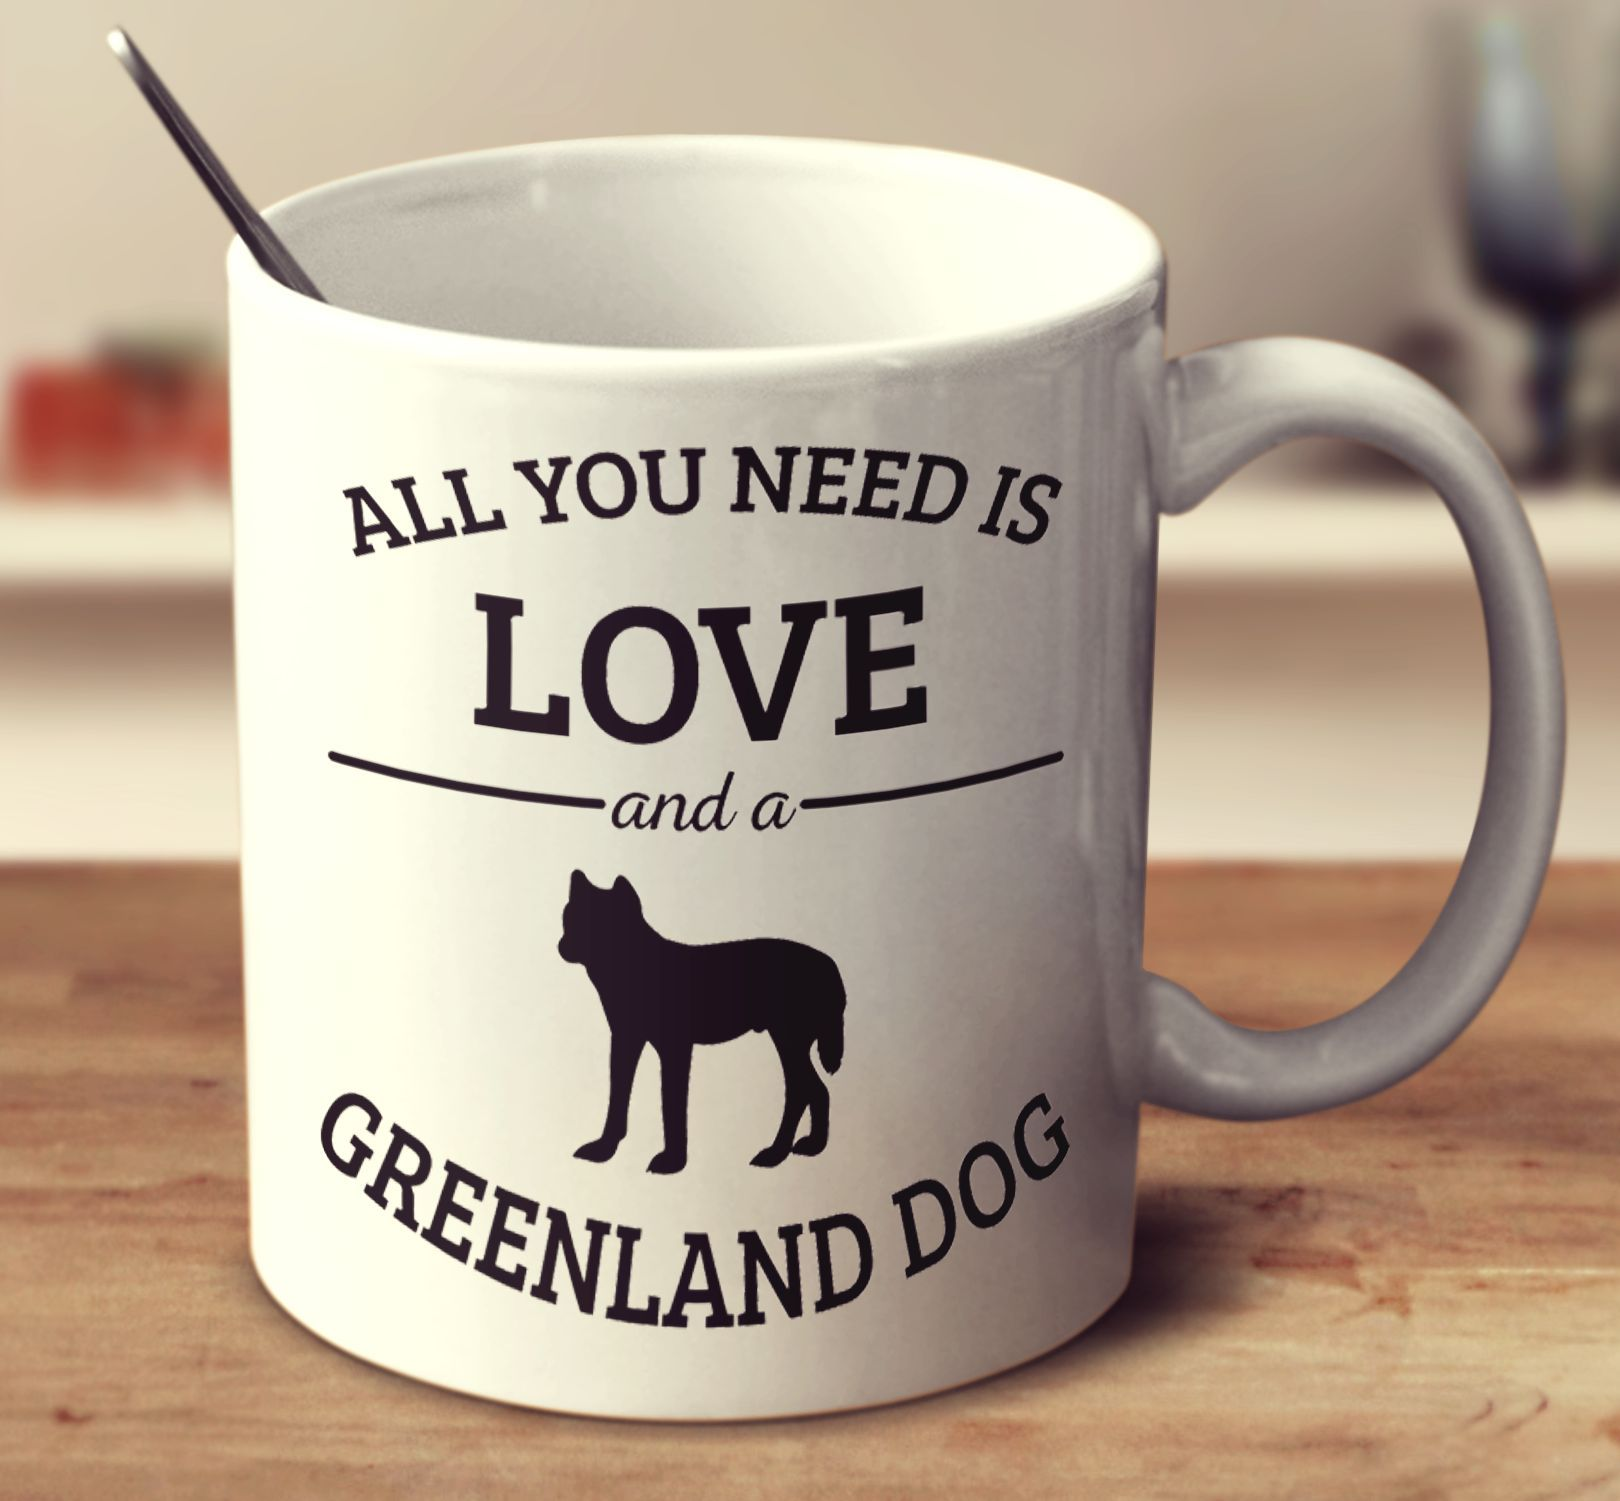 All You Need Is Love And A Greenland Dog